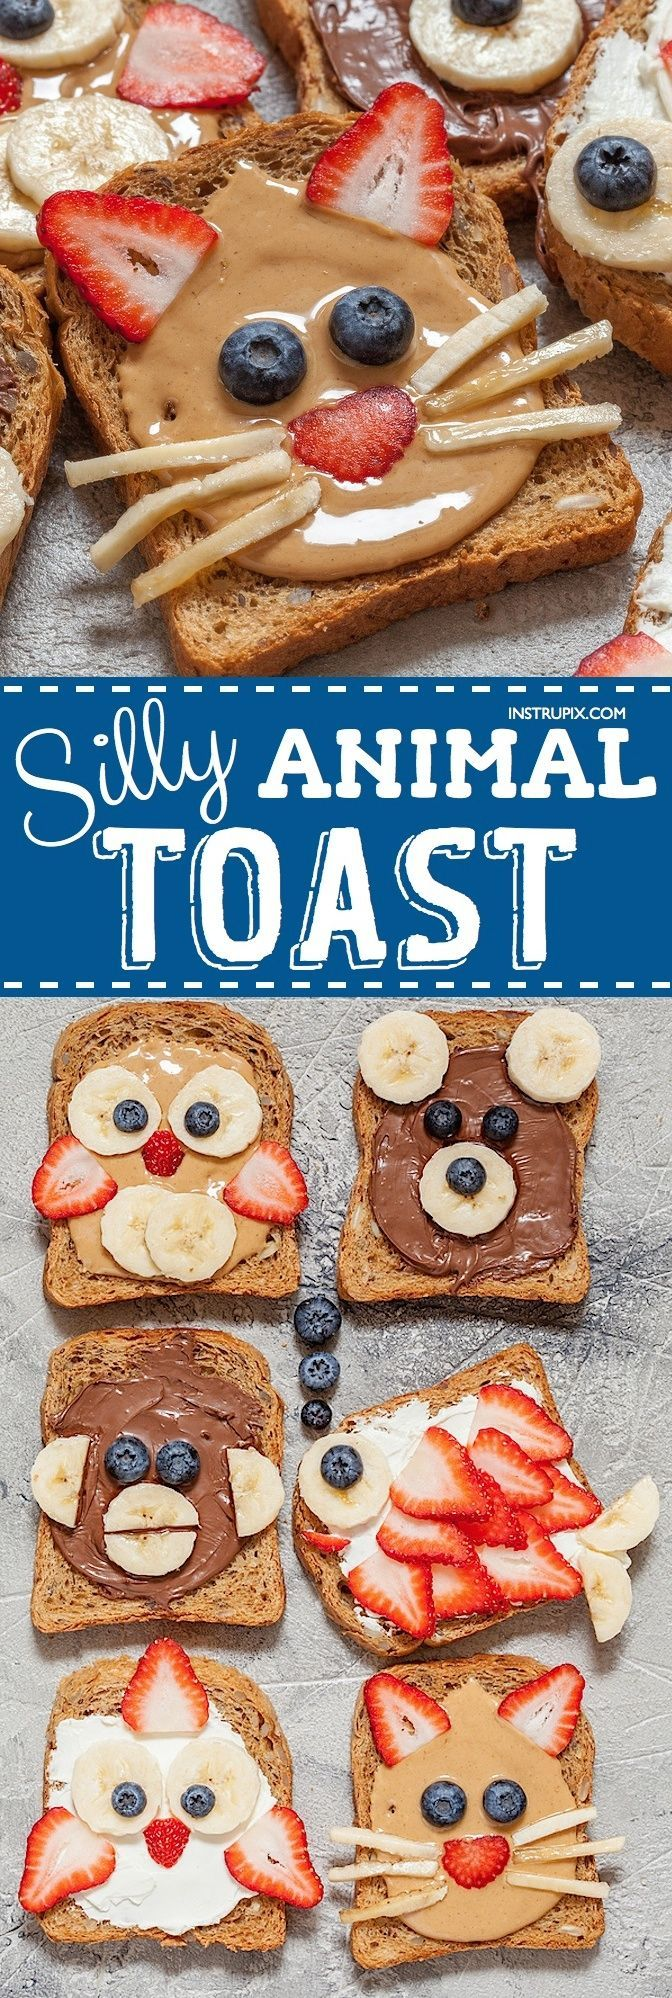 These easy breakfast and snack ideas for kids are super quick and healthy! Fun toast ideas that only require a handful of ingredients (bread, nut butters and fruit). Make them into silly animals or anything you can imagine. http://healthyquickly.com